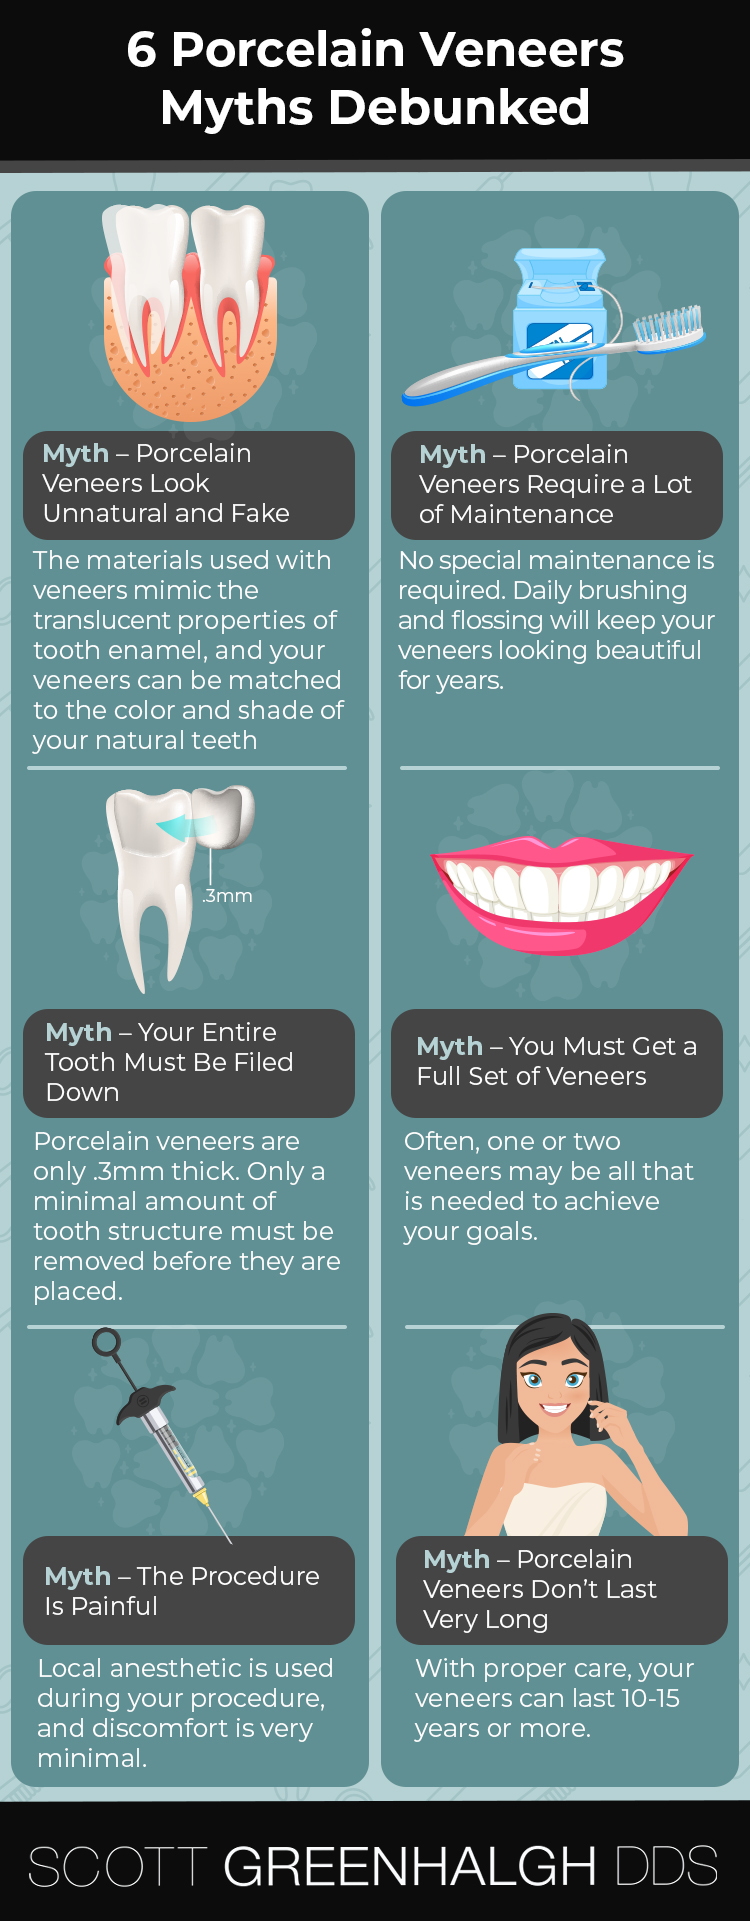 infographic debunking 6 common porcelain veneers myths